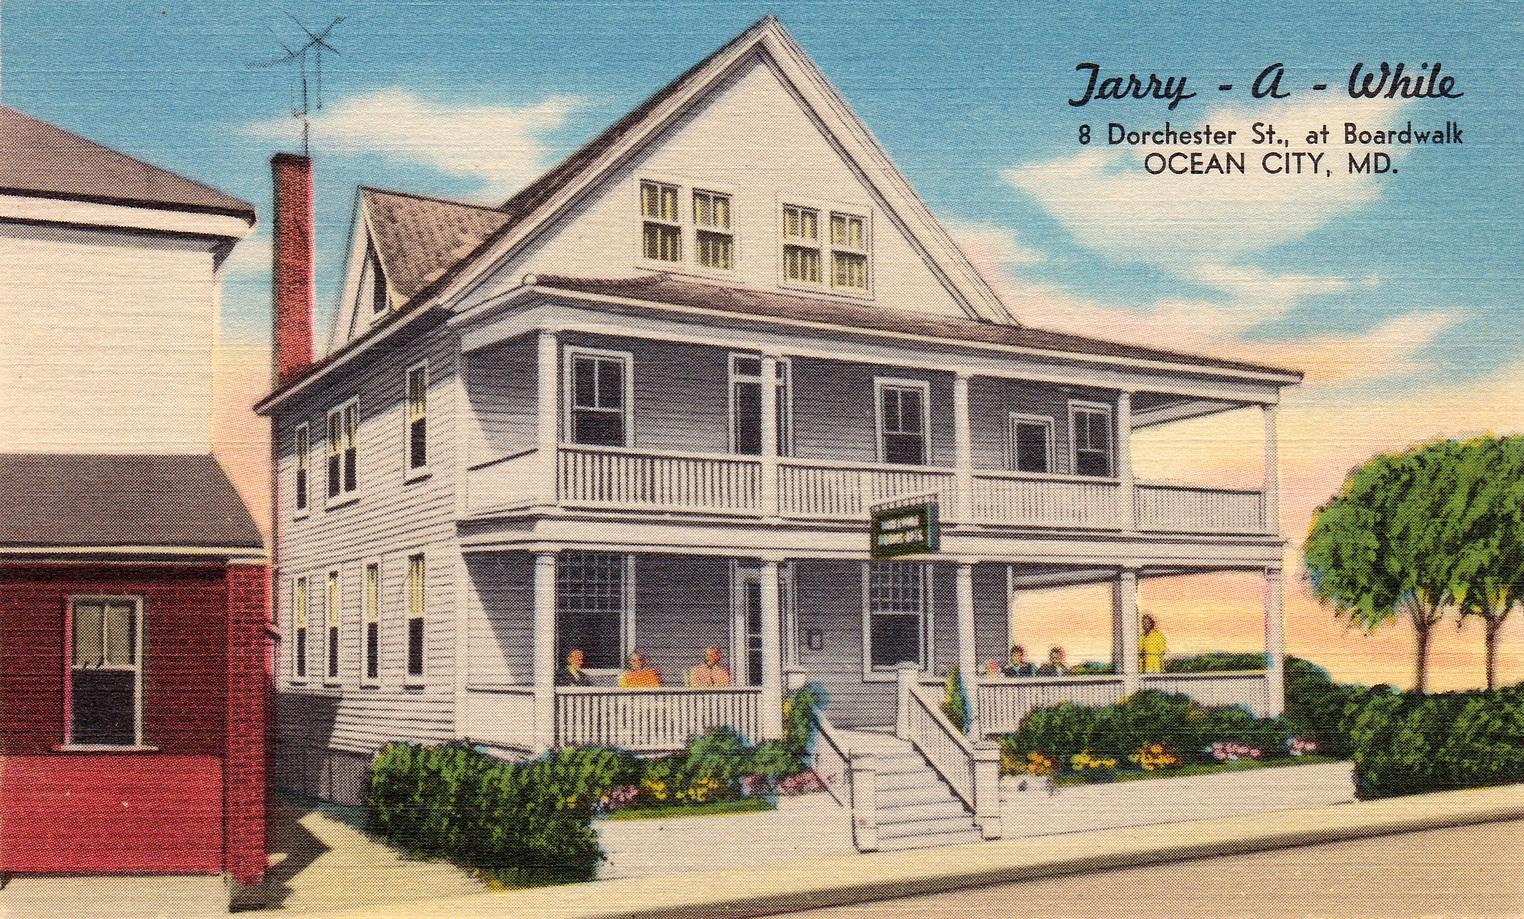 The Tarry-A-While tourist home in Ocean City, Maryland